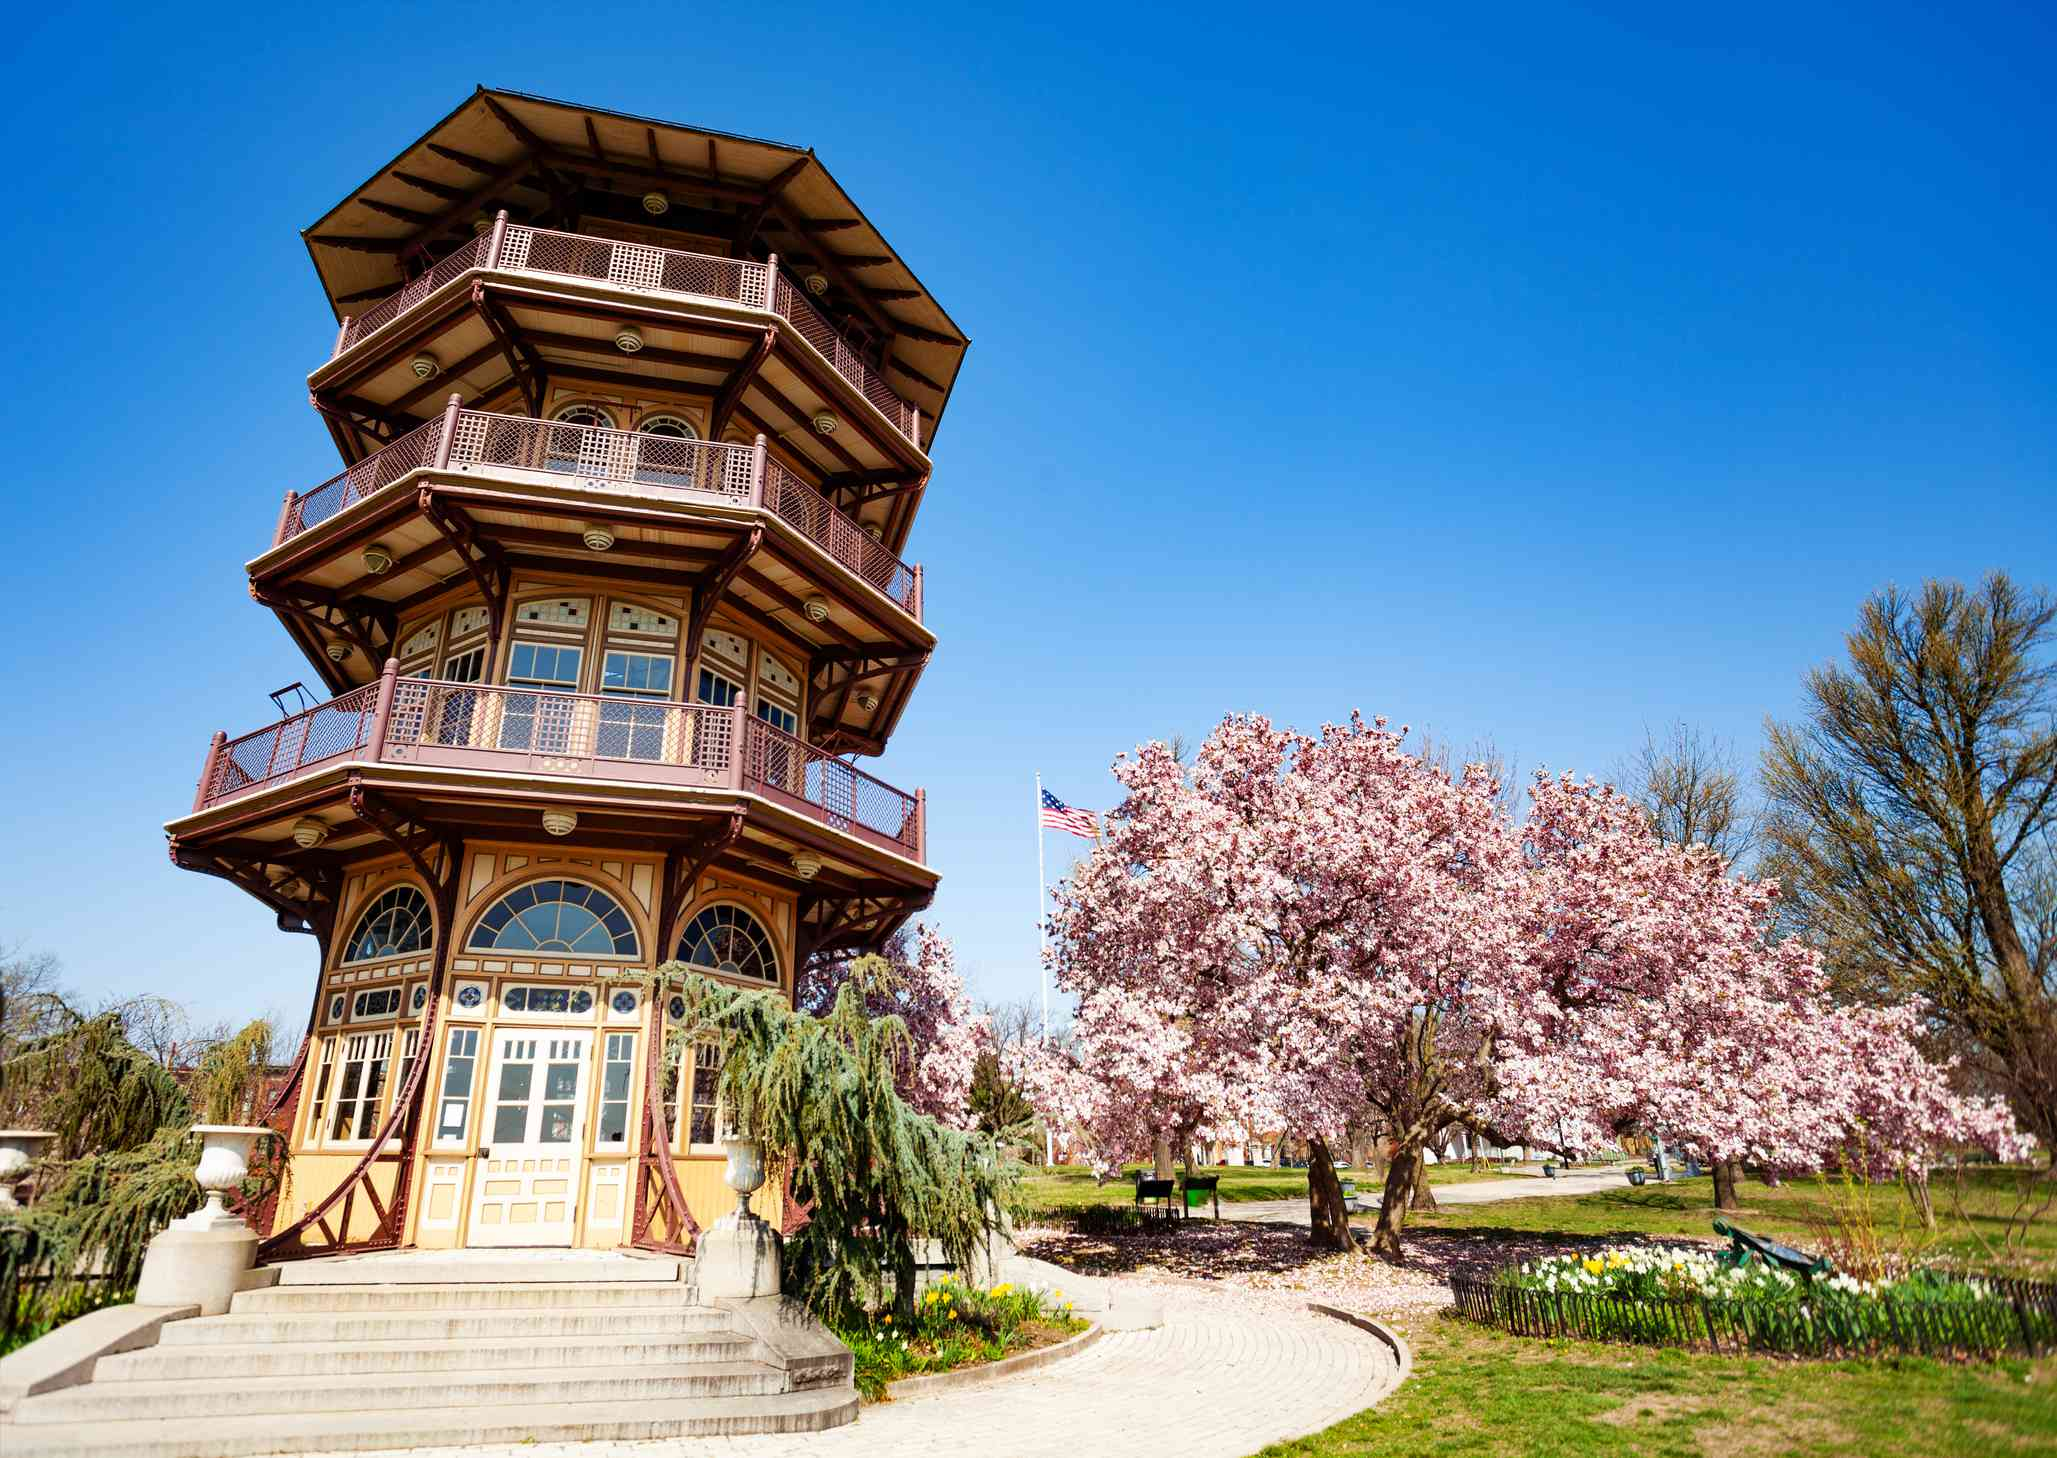 Pagoda Observatory in Patterson Park, Baltimore